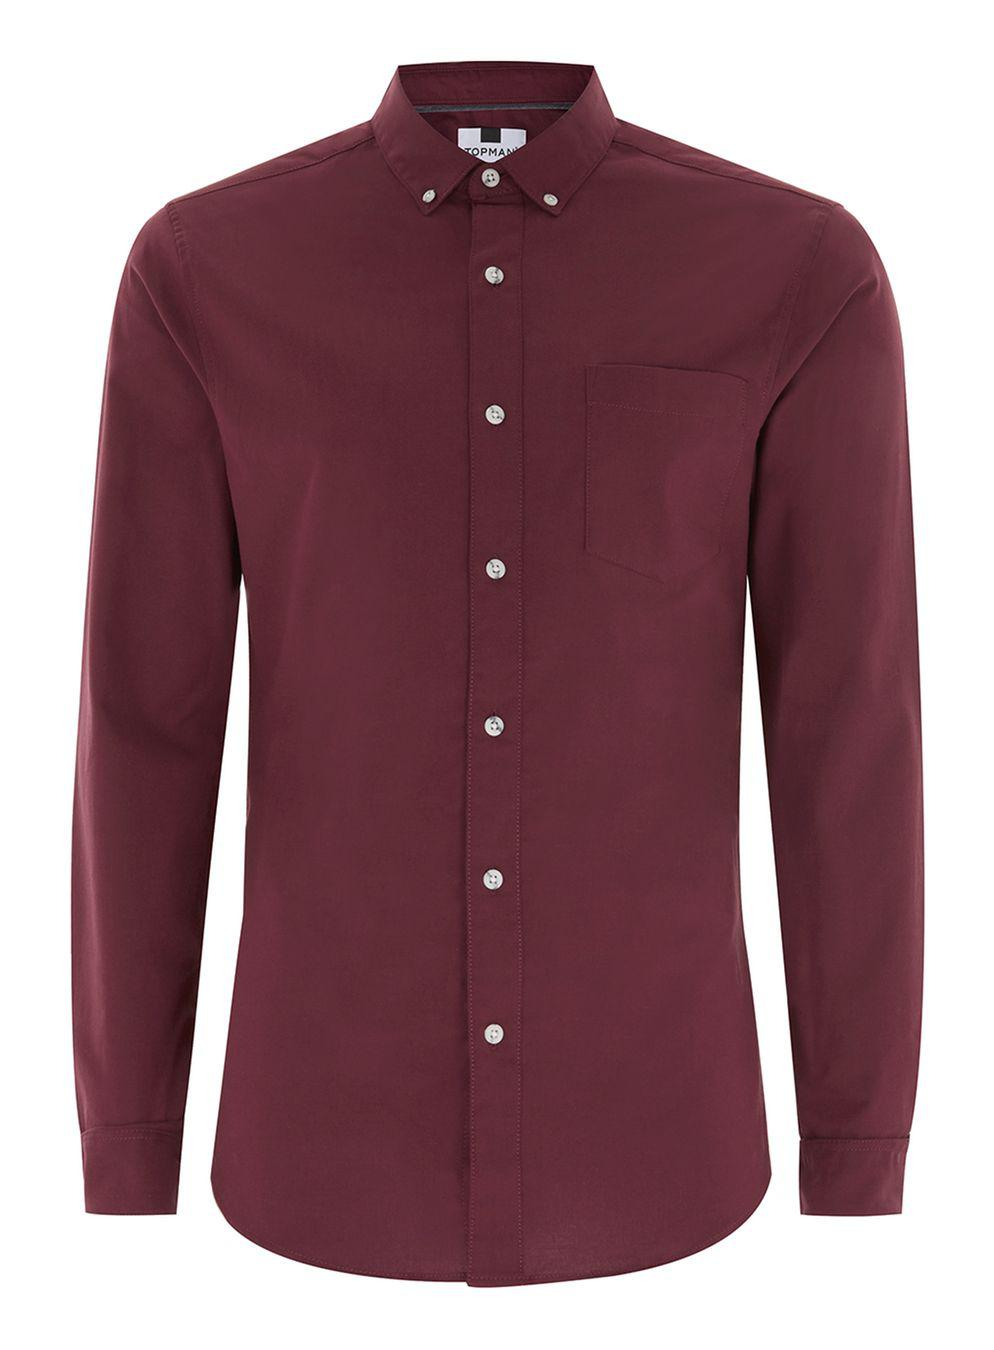 Lyst Topman Burgundy Muscle Fit Oxford Shirt In Red For Men